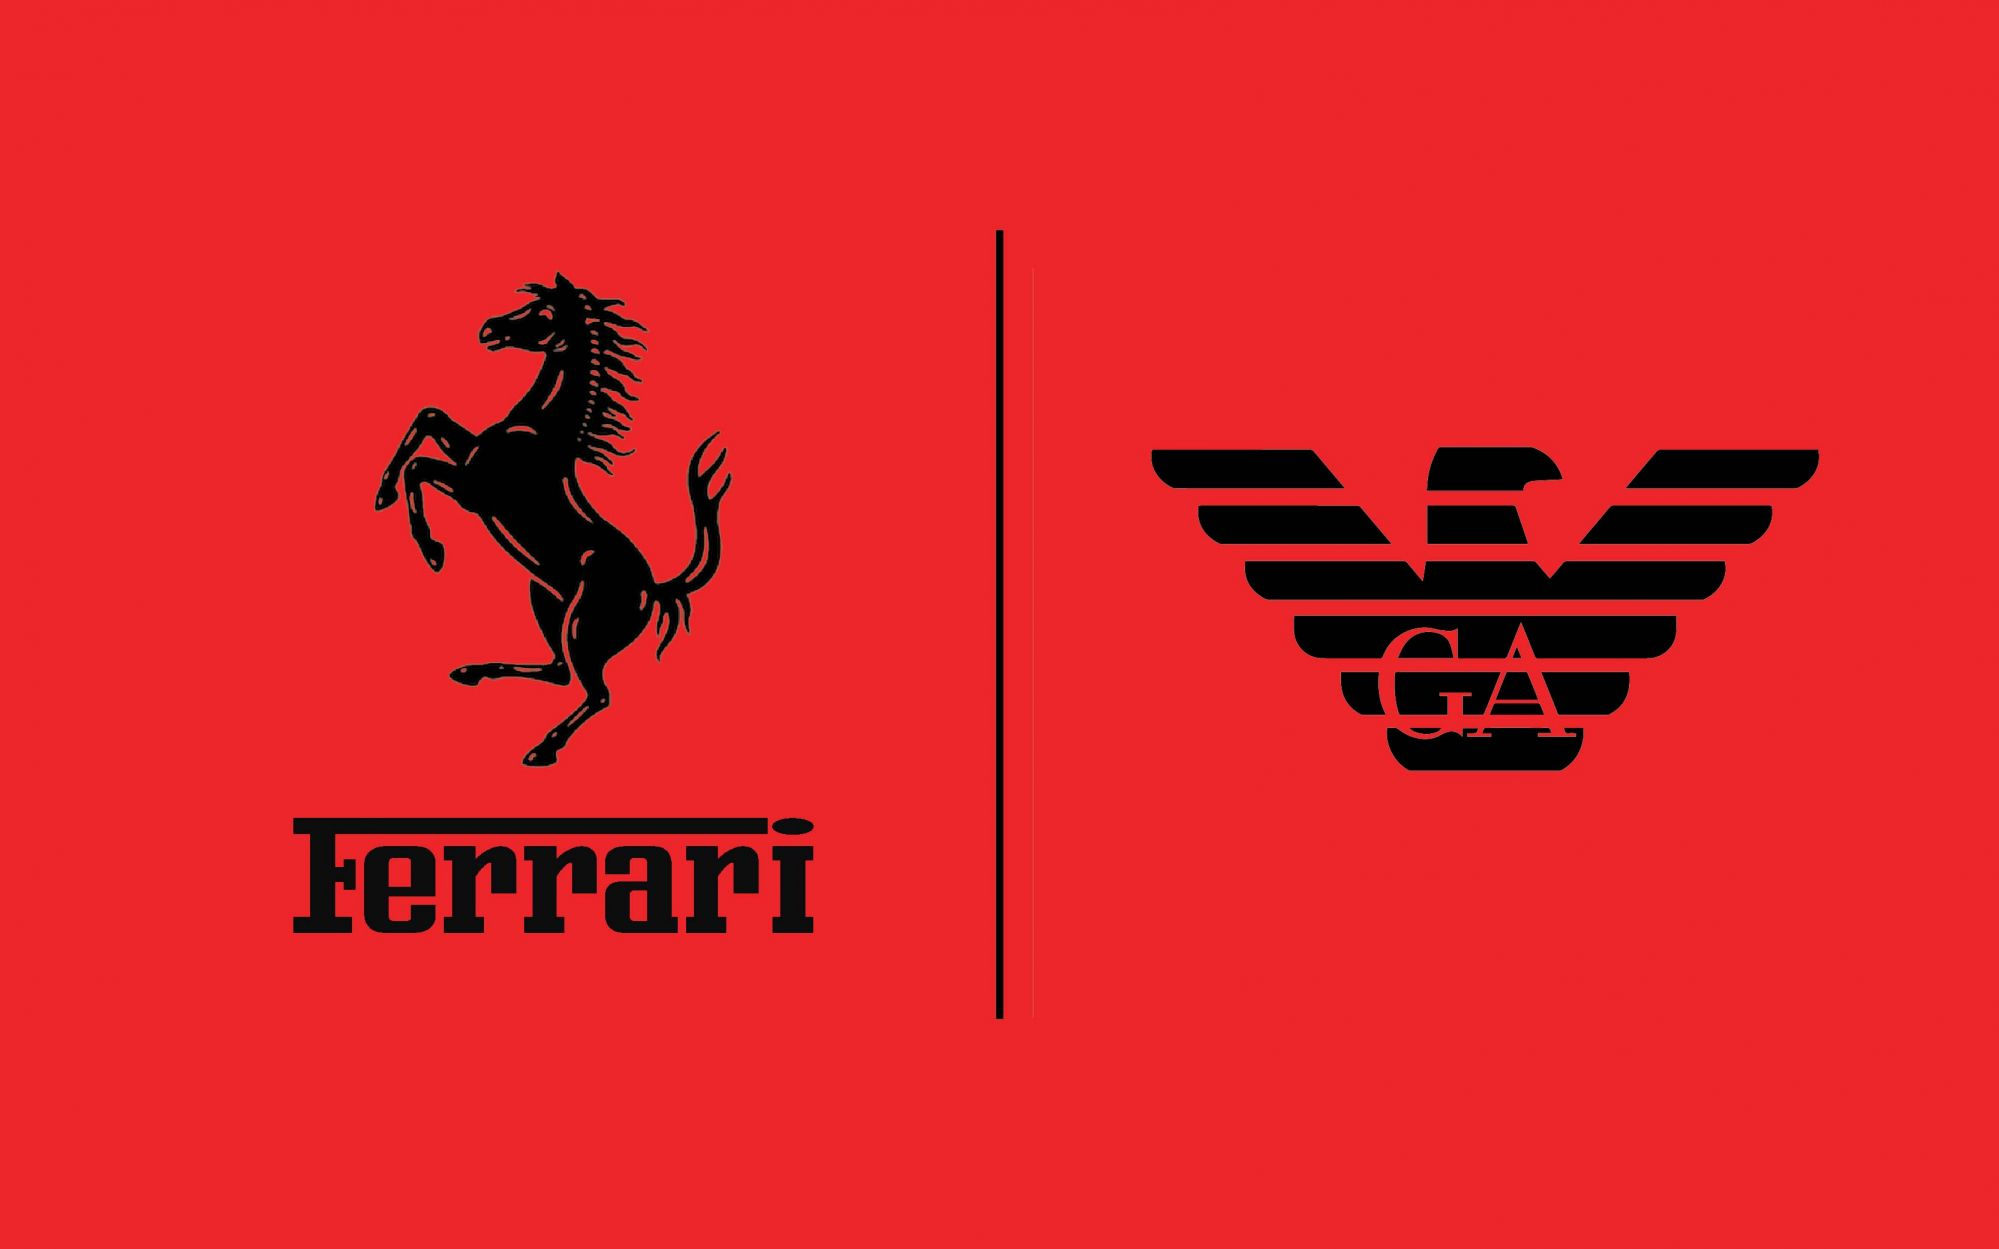 Ferrari and Armani collaborate to refocus brand equity